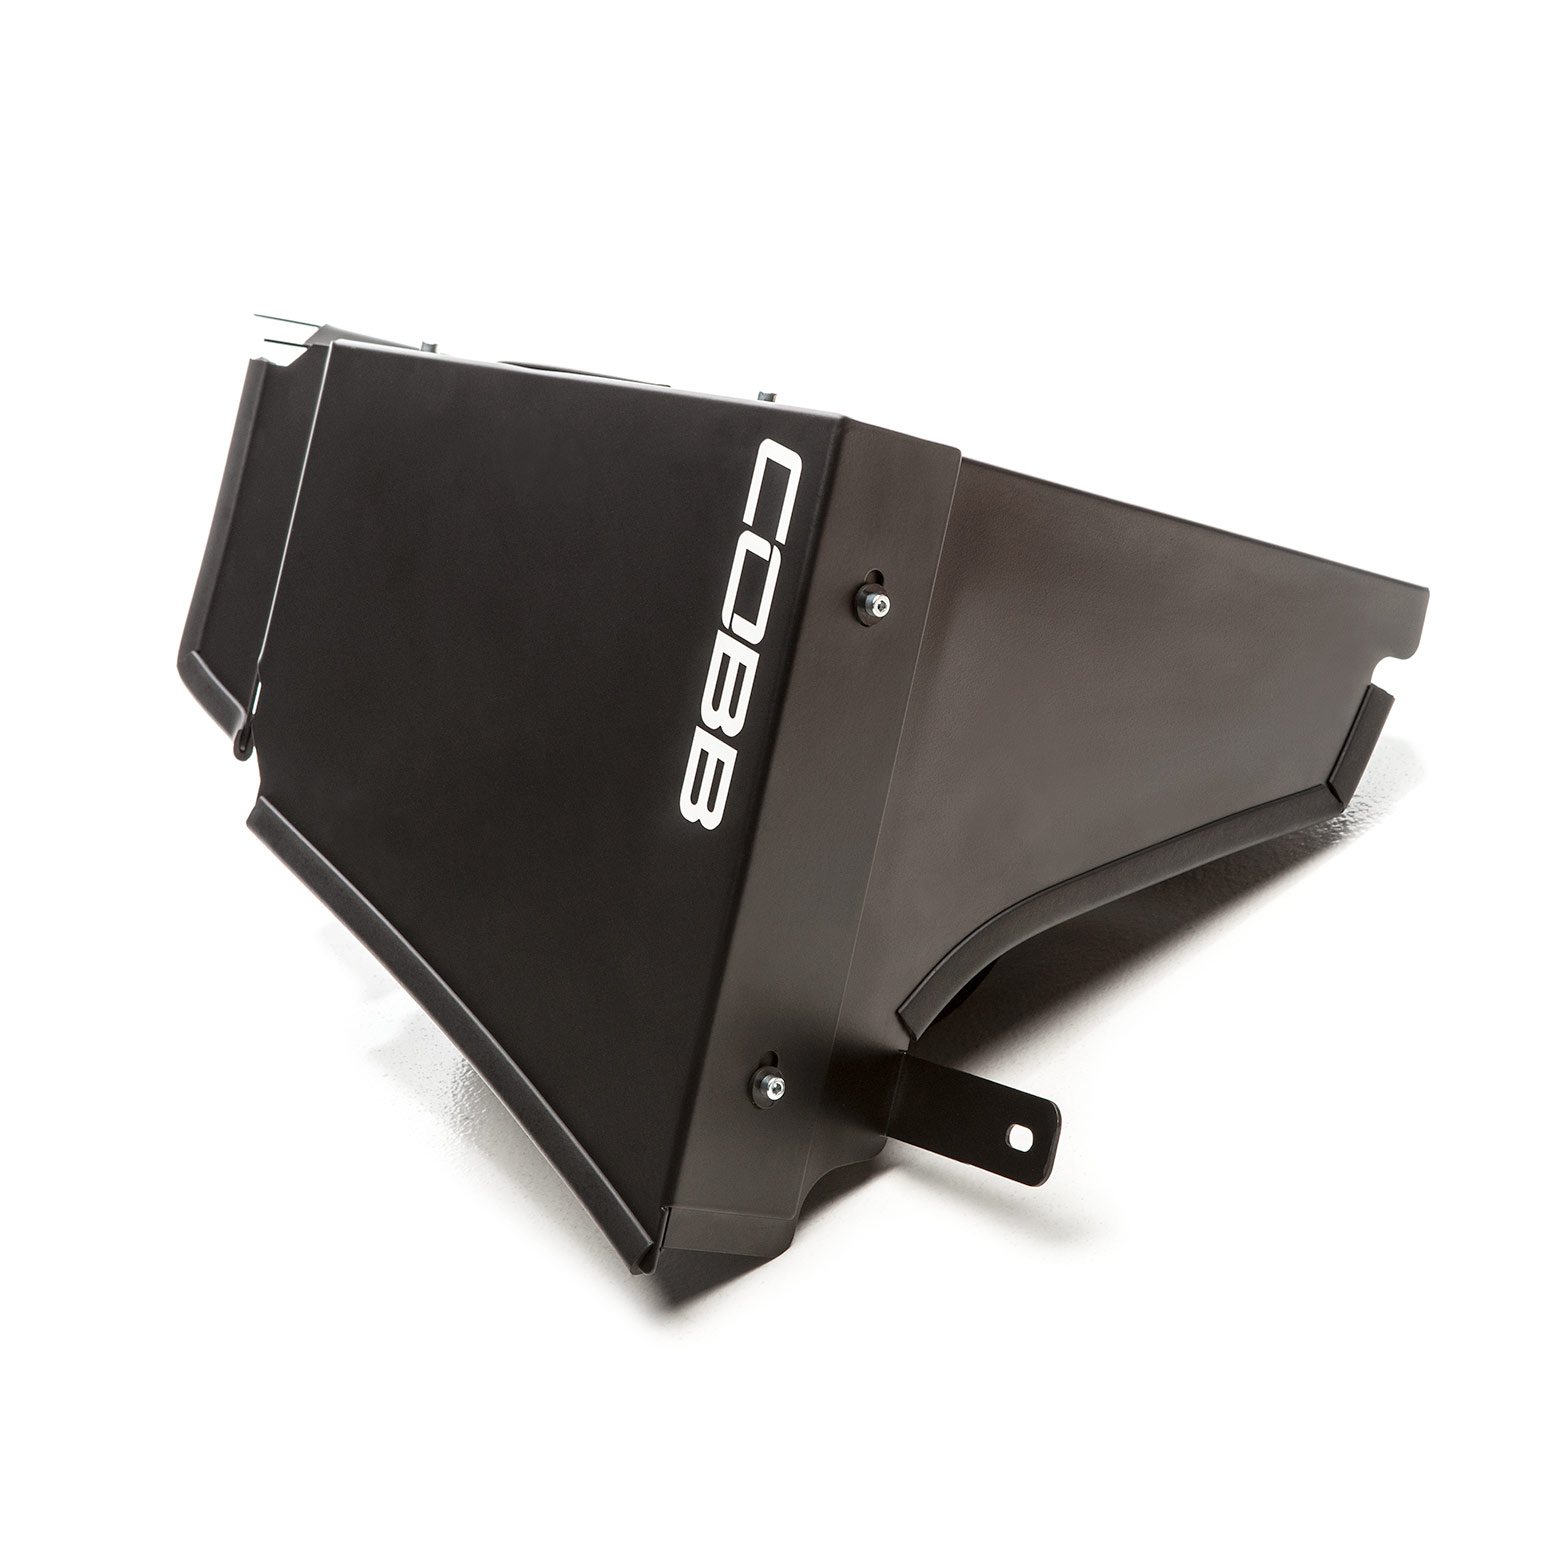 COBB Intake System for 2015+ Ford Mustang Ecoboost (7M1100)